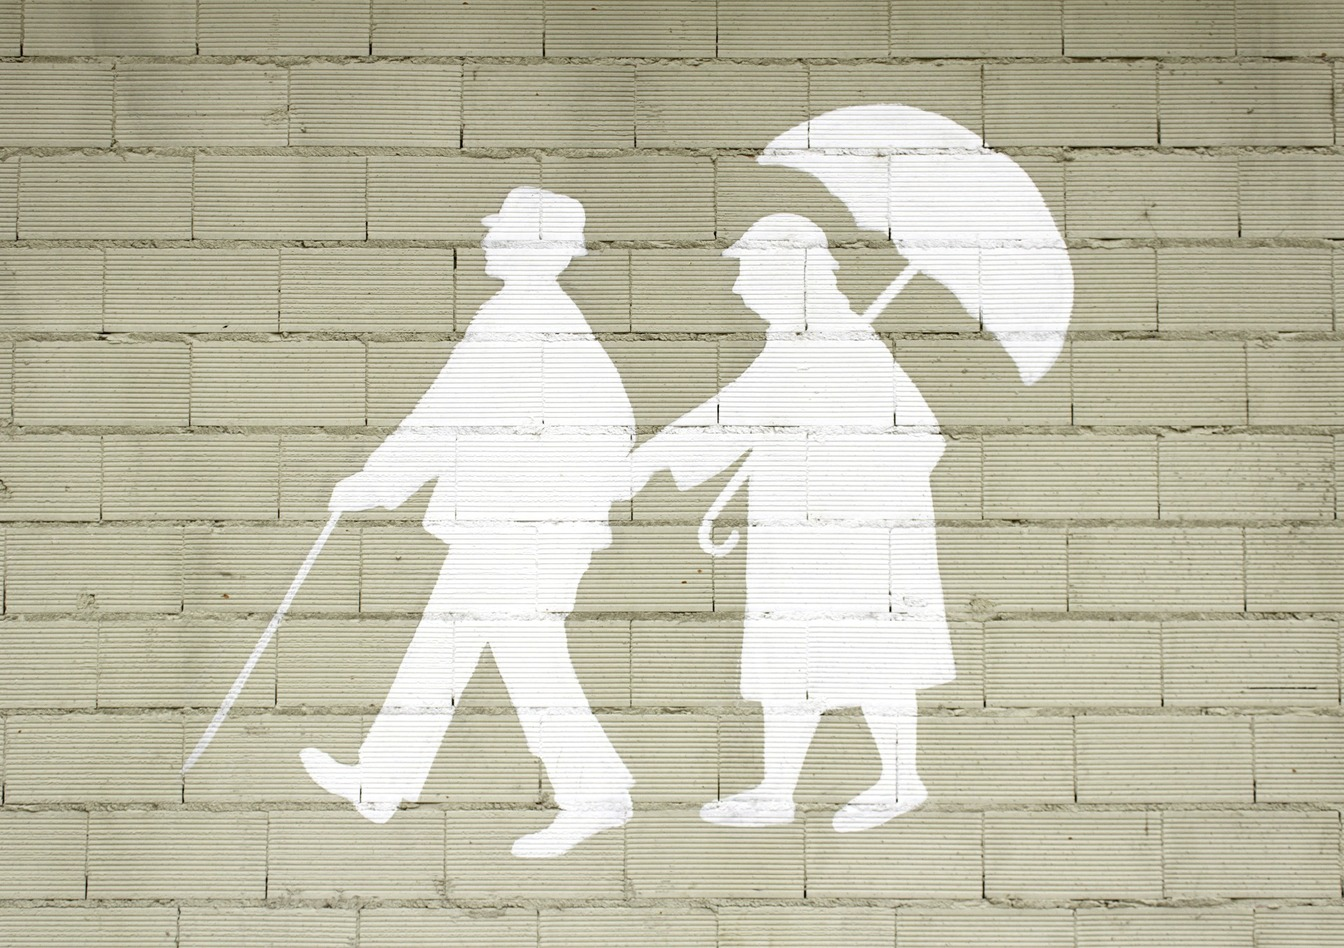 An outline of an elderly couple walking along, painted on a wall